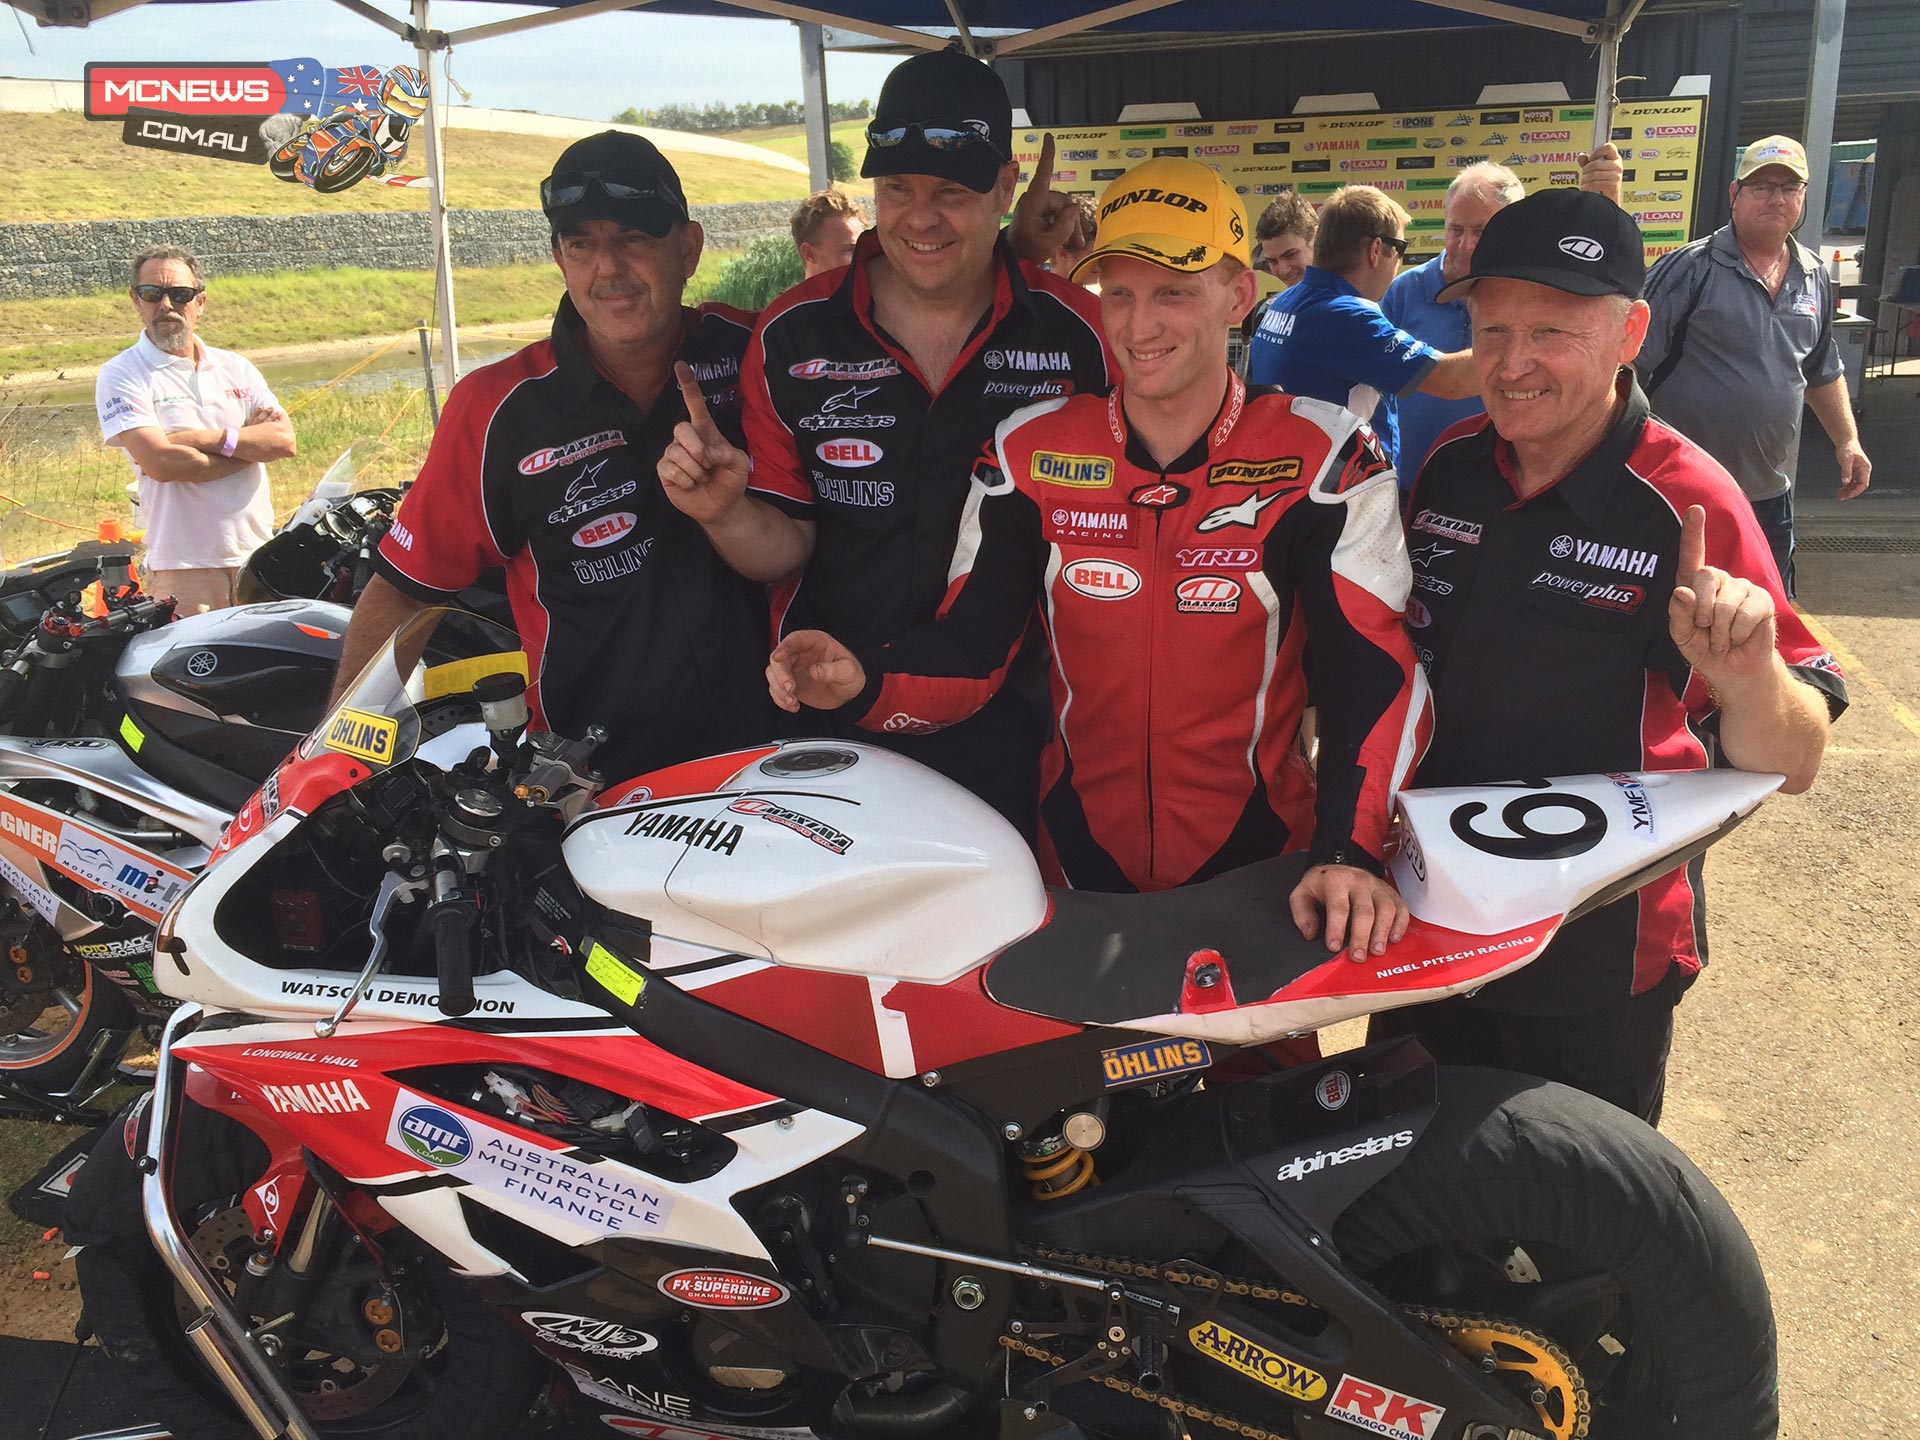 Maxima Yamaha rider Aaron Morris has claimed the coveted Supersport Championship by the narrowest of margins at the final round of the 2014 YMF Loan Yamaha Australian FX Superbike Championship.